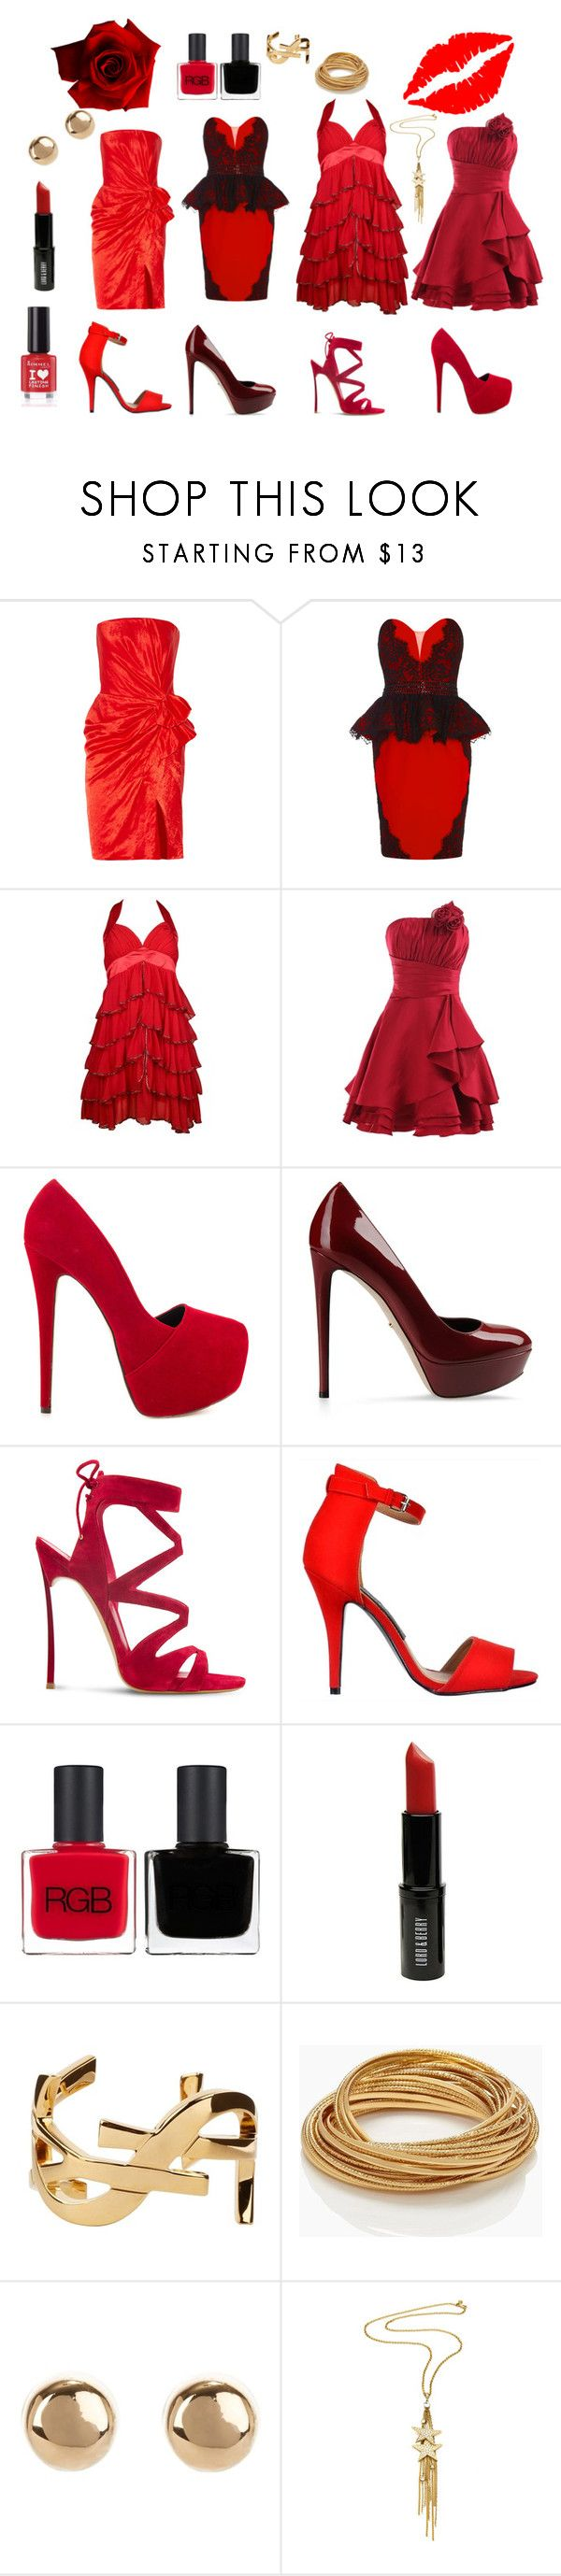 red dresses by kelly17-kalymnos on Polyvore featuring Landybridal, Lanvin, Sergio Rossi, Liliana, Casadei, Kate Spade, Yves Saint Laurent, Jules Smith, Ben-Amun and Lord & Berry